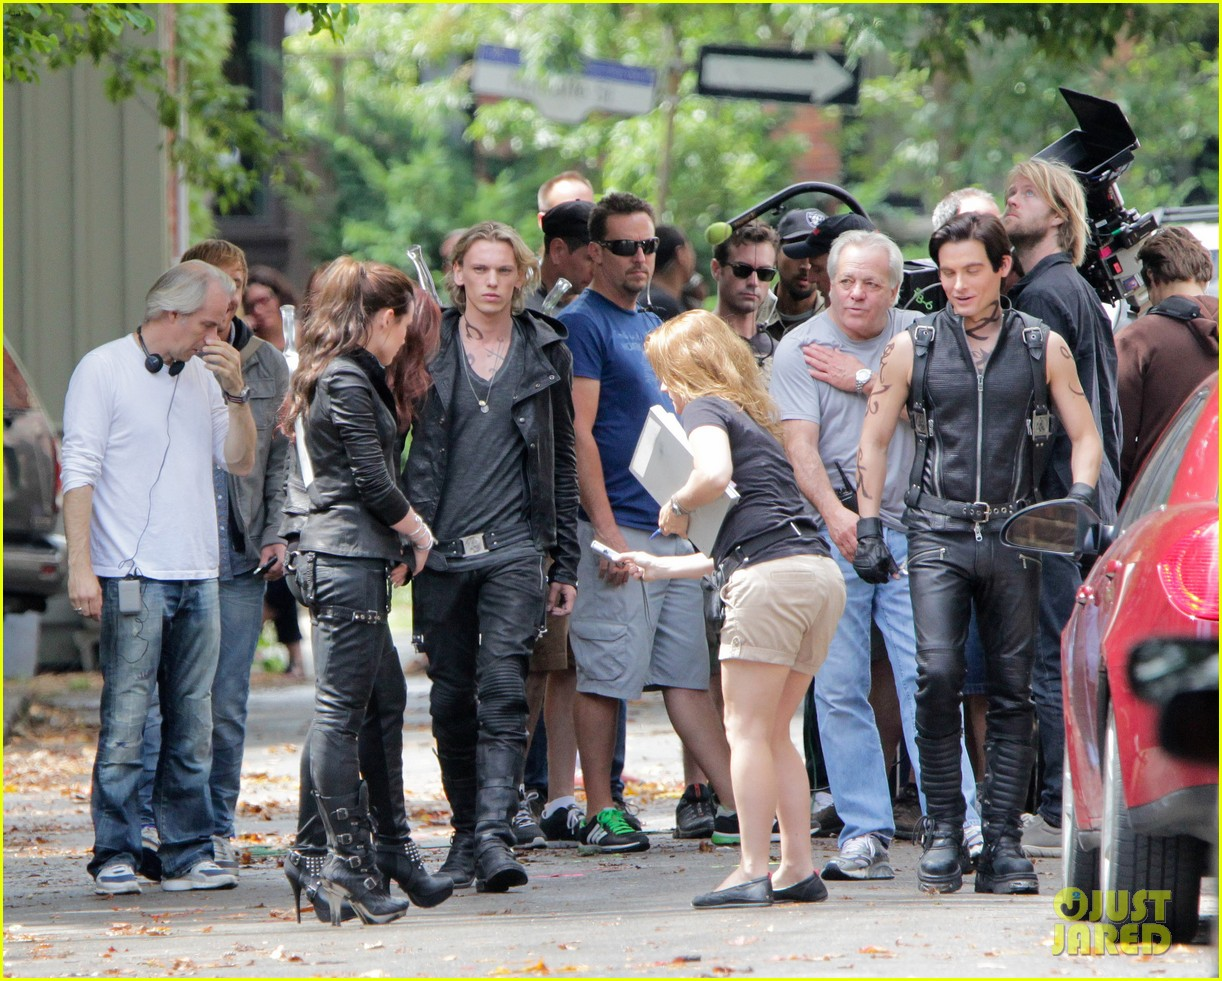 Mortal Instruments city of bones in set